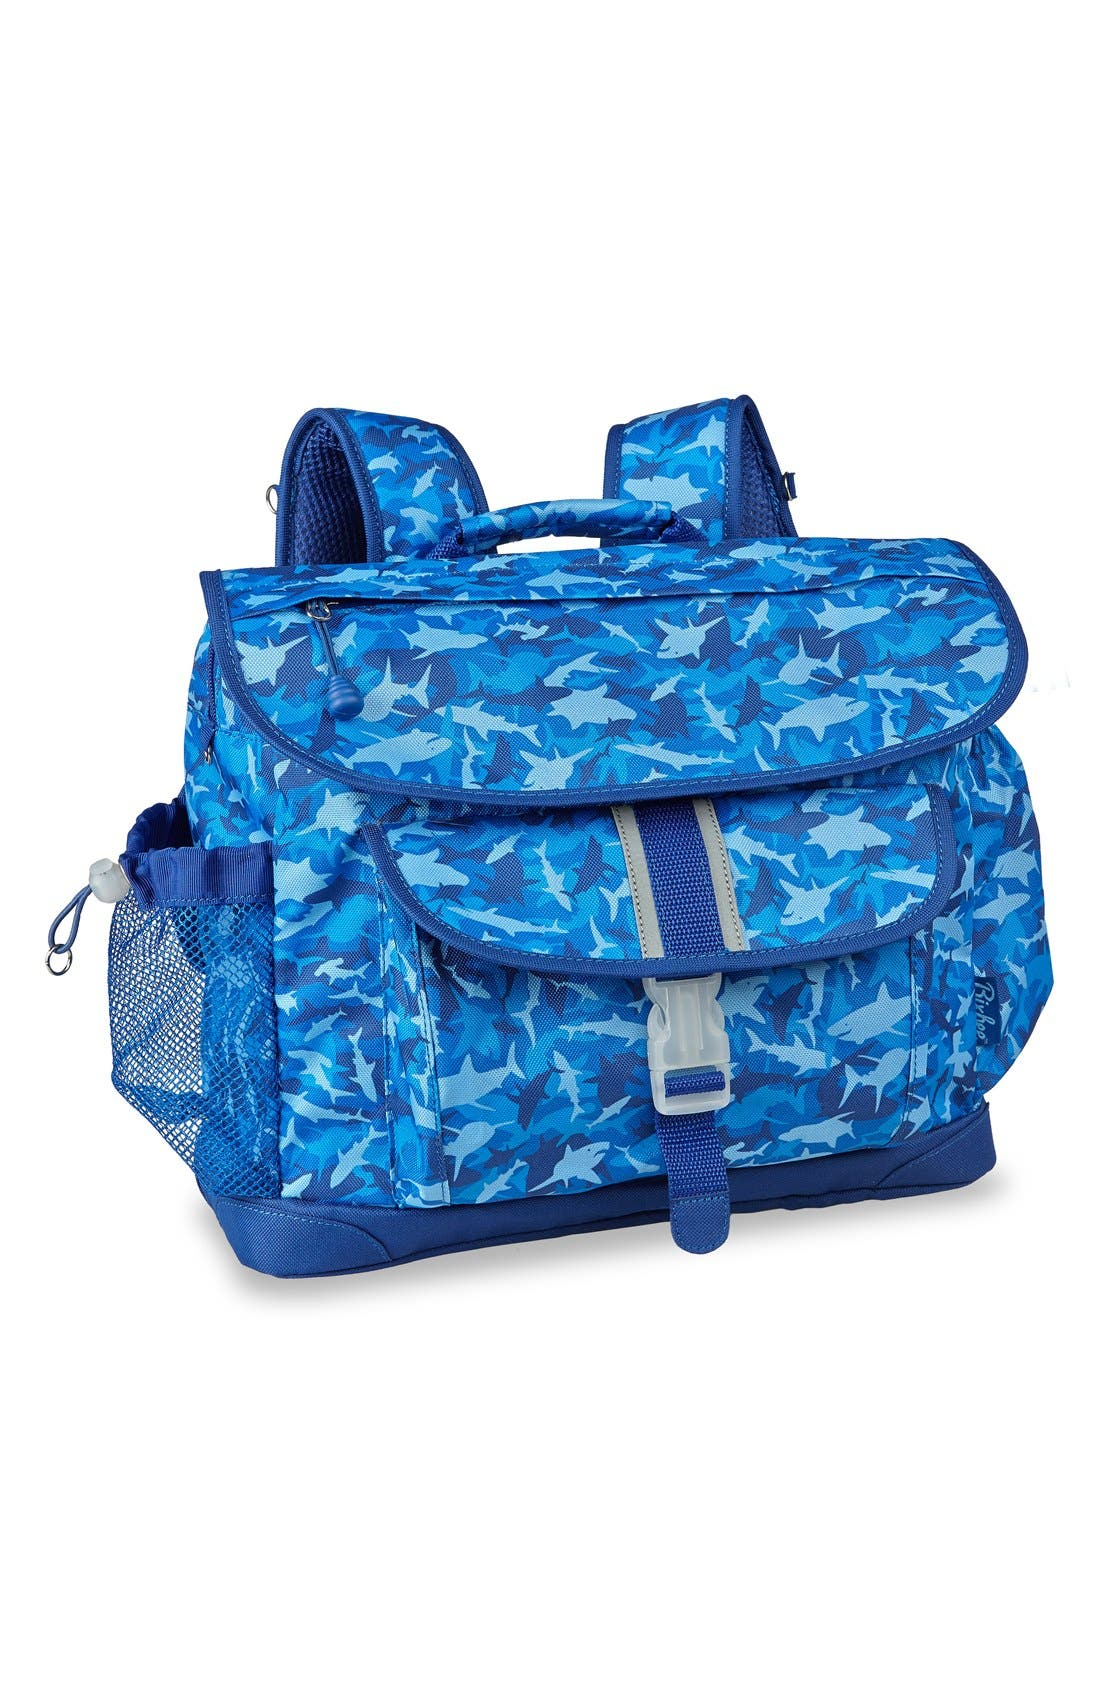 BIXBEE 'Medium Shark Camo' Water Resistant Backpack